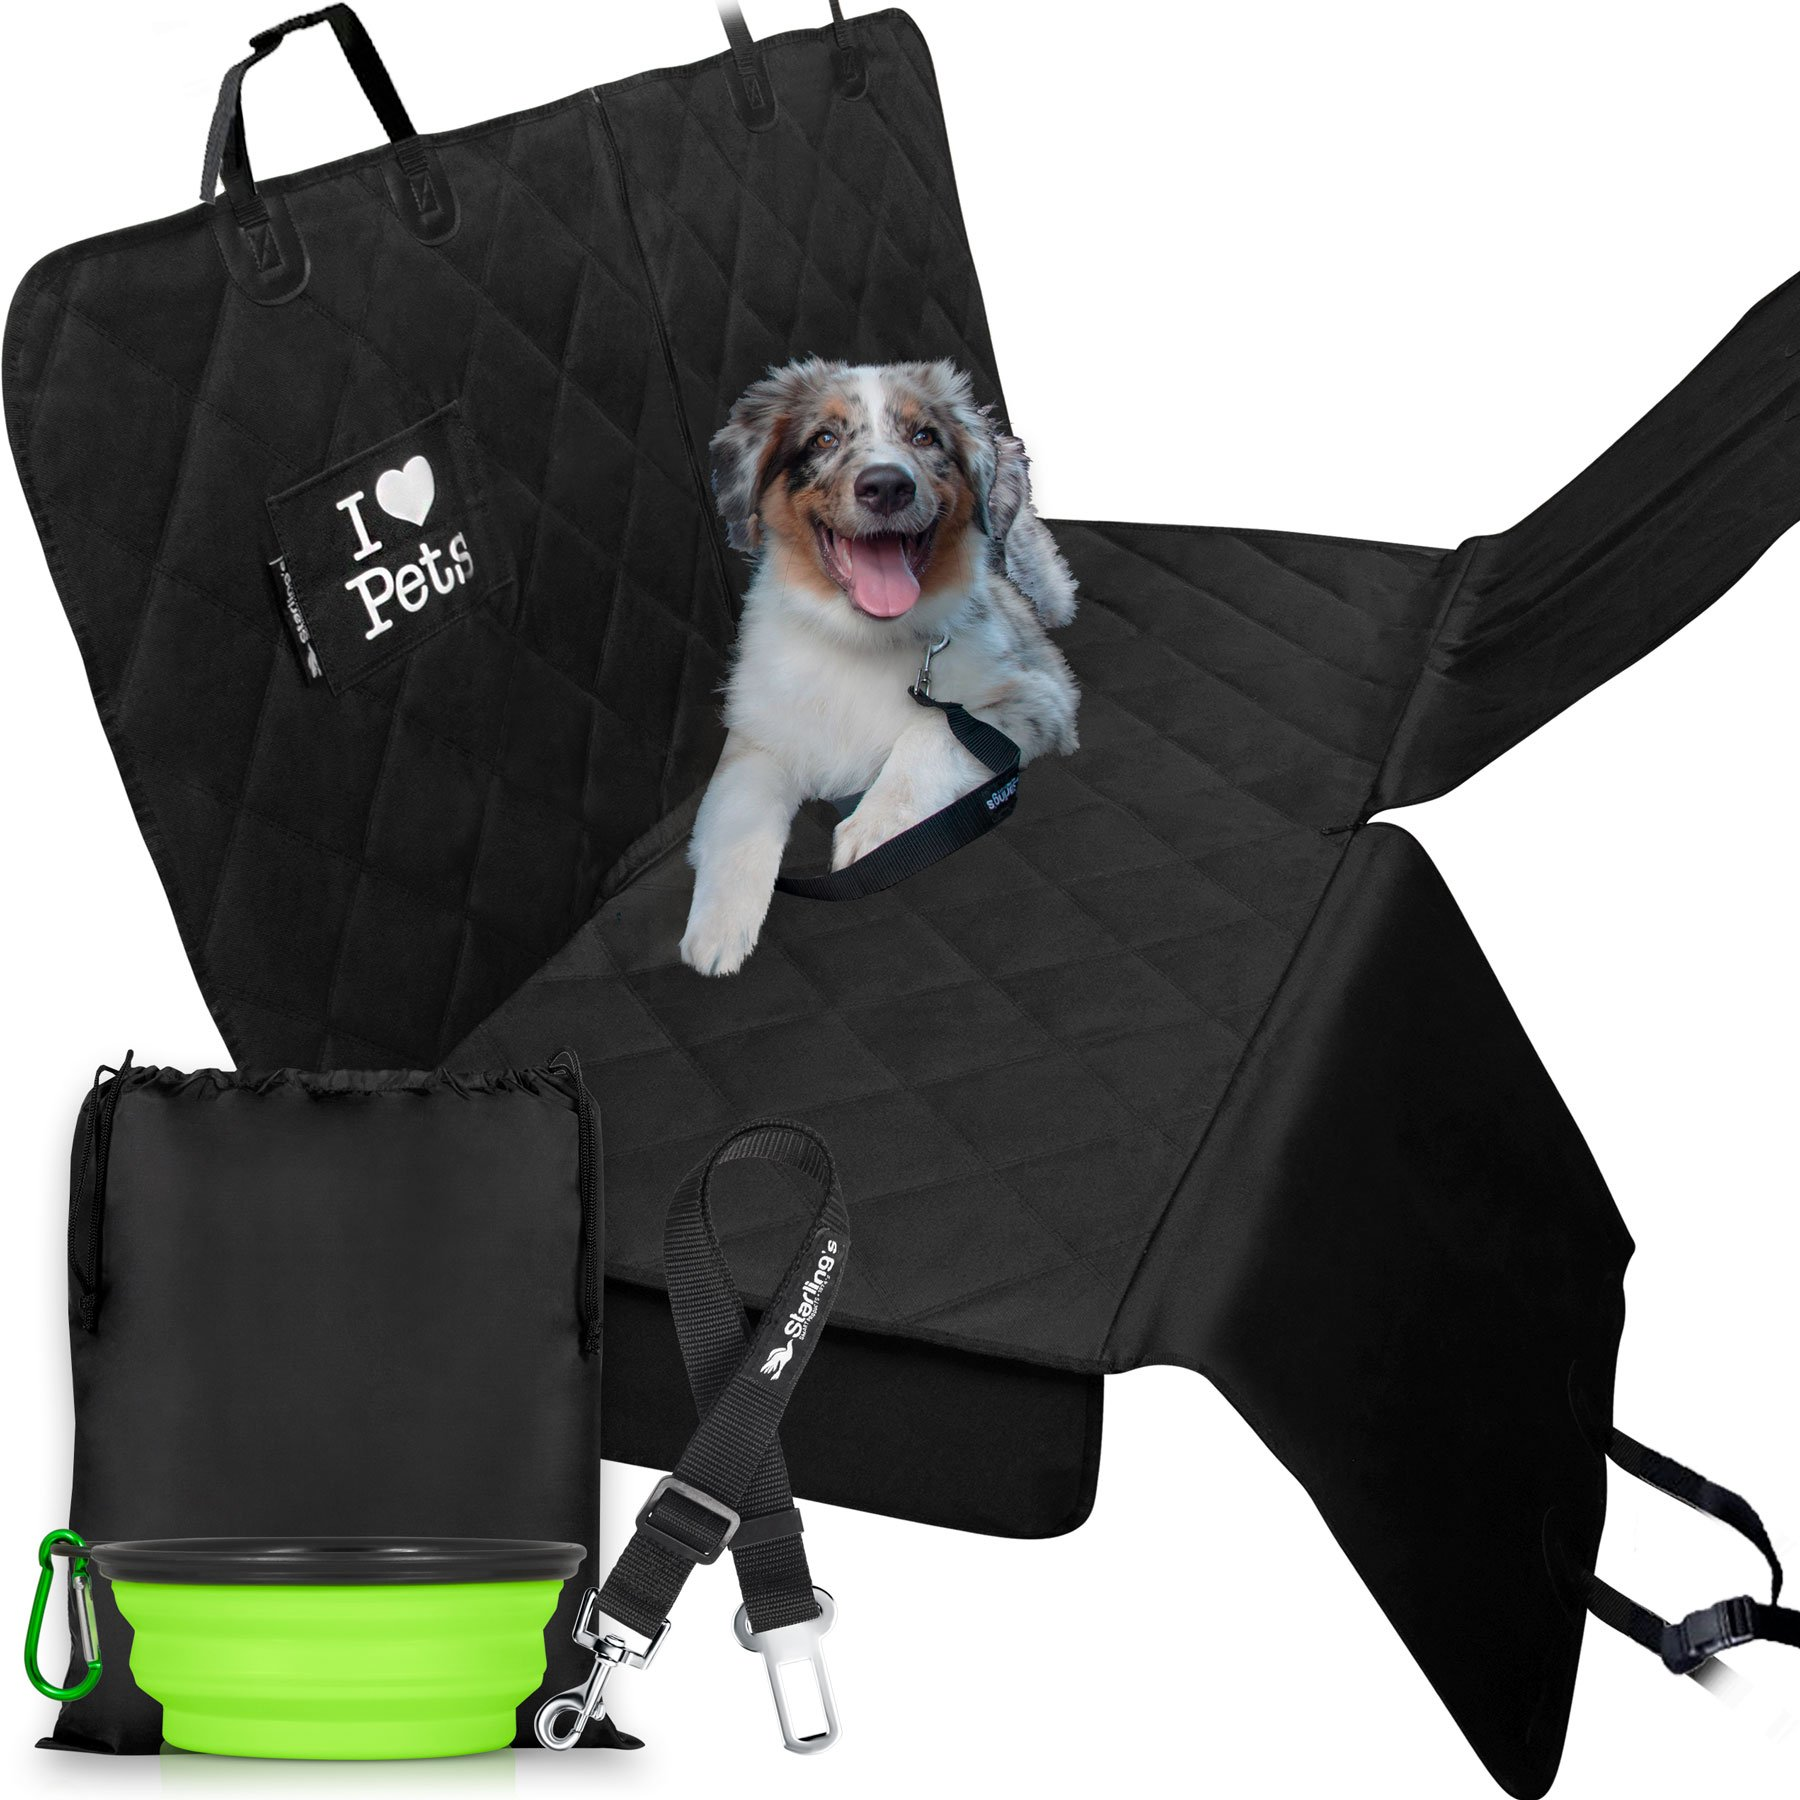 Dog Car Covers for Backseat by Starling's Hammock Style|Latest Model, Heavy Duty, Waterproof, Non-Slip & Vents for All 3 Seat Belts|Fits All Vehicles, SUV! W/Dog Bowl & Pet Seat-Belt product image